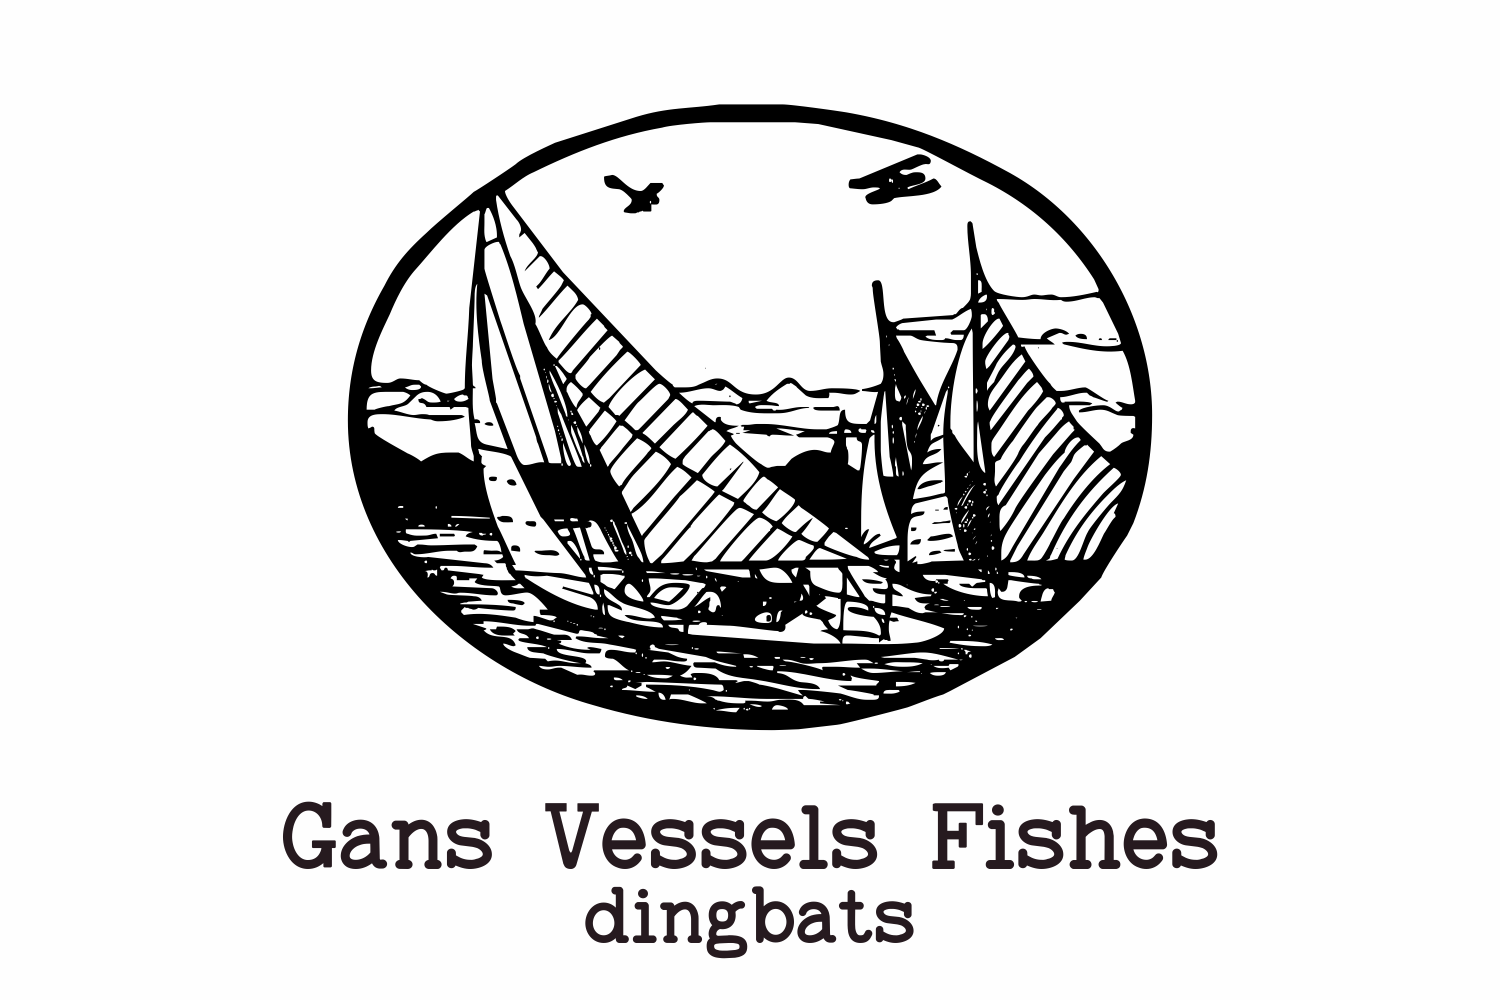 Gans Vessels Fishes example image 5